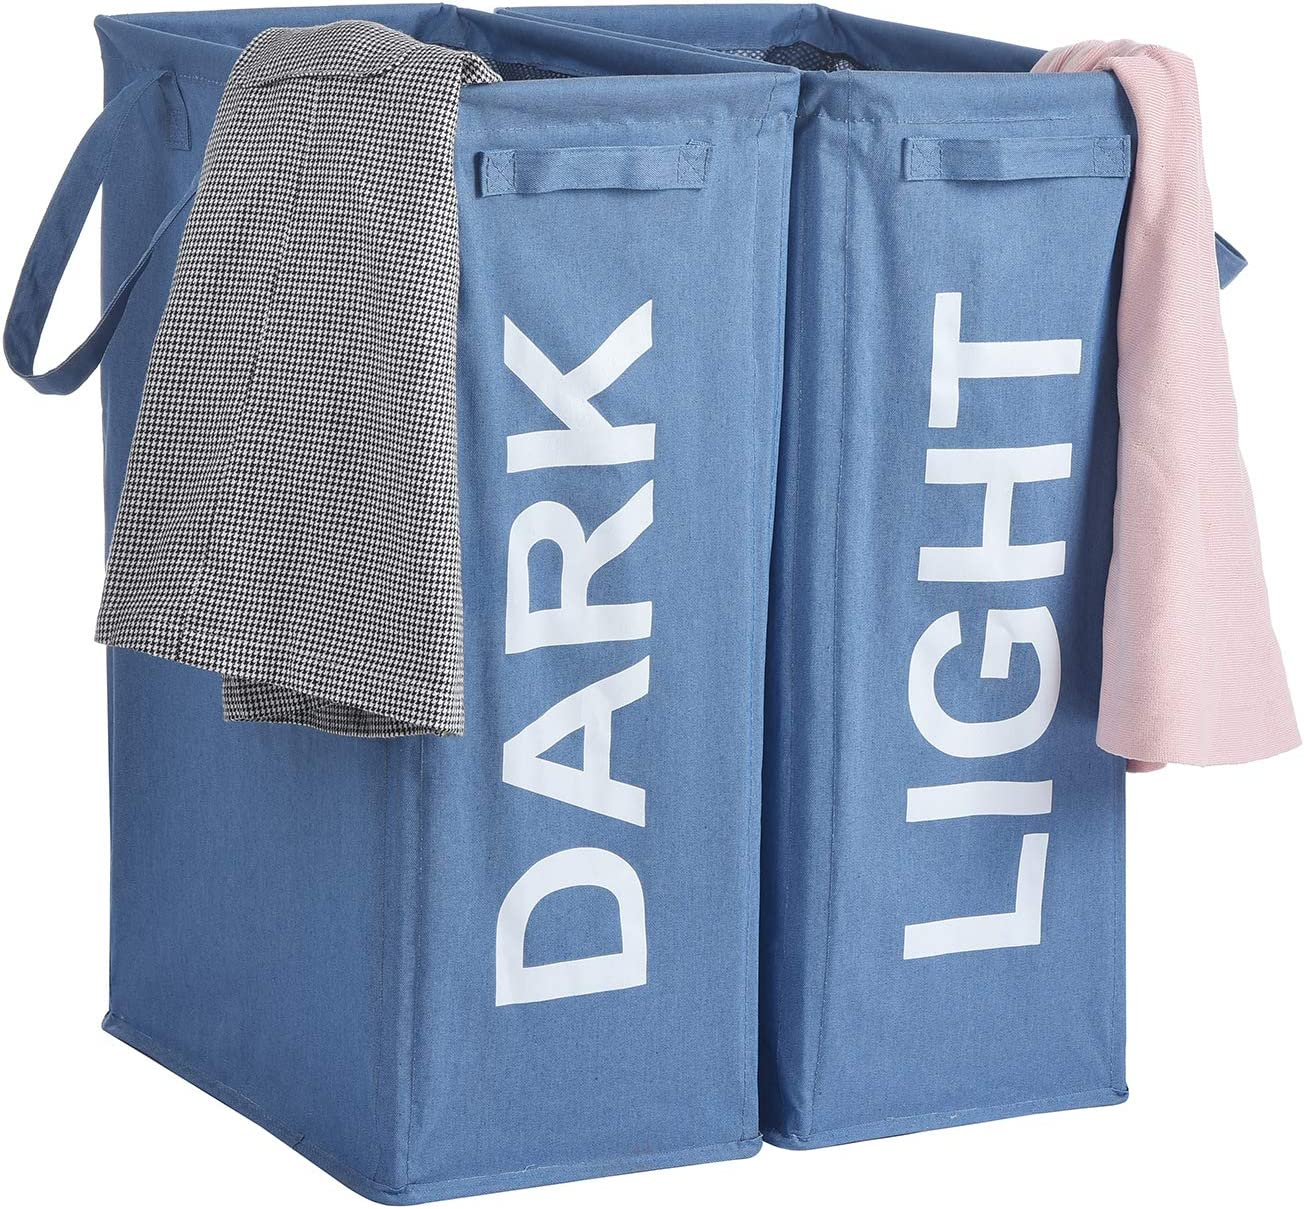 "Haundry 26"" Tall Slim Laundry Hamper with Handles, 2Pcs/Set Large Thin Foldable Waterproof Double Laundry Basket Bag for Dirty Clothes Storage"